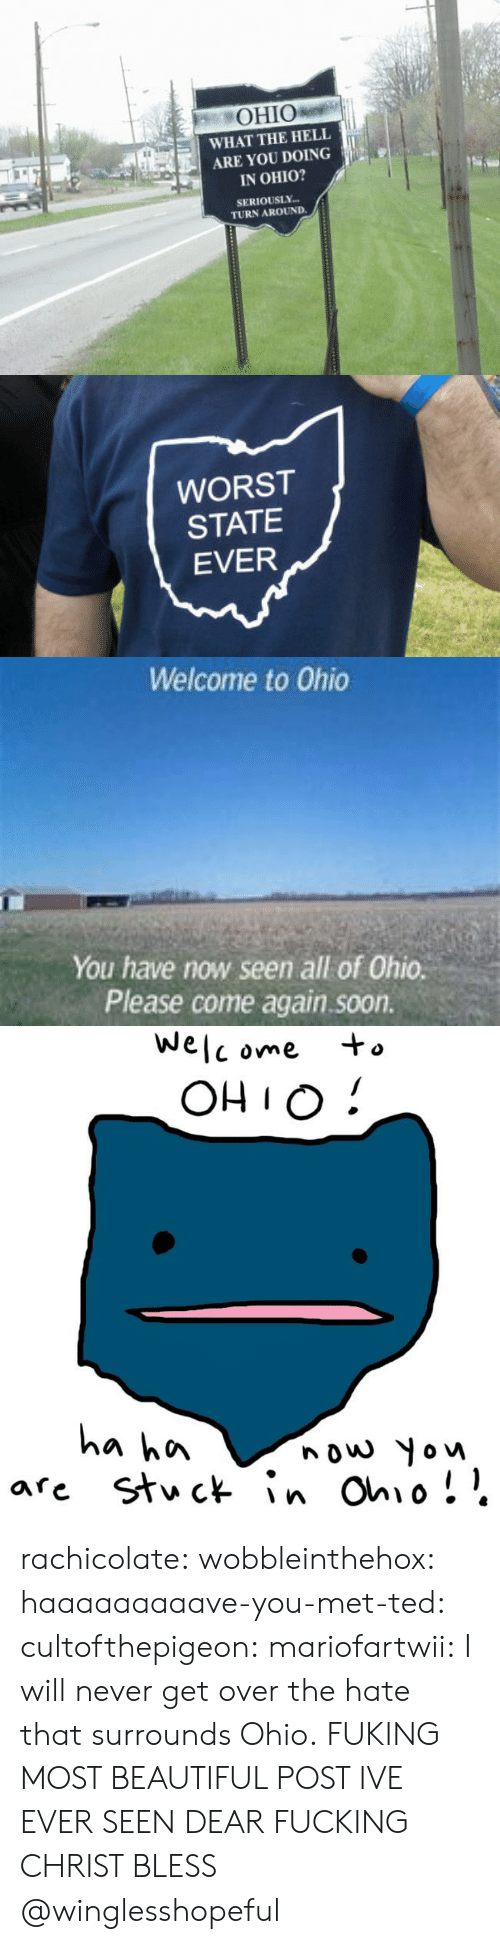 Beautiful, Fucking, and Soon...: OHIO  WHAT THE HELL  ARE YOU DOING  IN OHIO?  SERIOUSLY  TURN AROUND.   WORST  STATE  EVER   Welcome to Ohio  You have now seen all of Ohio.  Please come again.soon.   We  C ome  OHIO!  a hn  nouw Yow rachicolate: wobbleinthehox:  haaaaaaaaave-you-met-ted:  cultofthepigeon:  mariofartwii:  I will never get over the hate that surrounds Ohio.  FUKING MOST BEAUTIFUL POST IVE EVER SEEN DEAR FUCKING CHRIST BLESS      @winglesshopeful